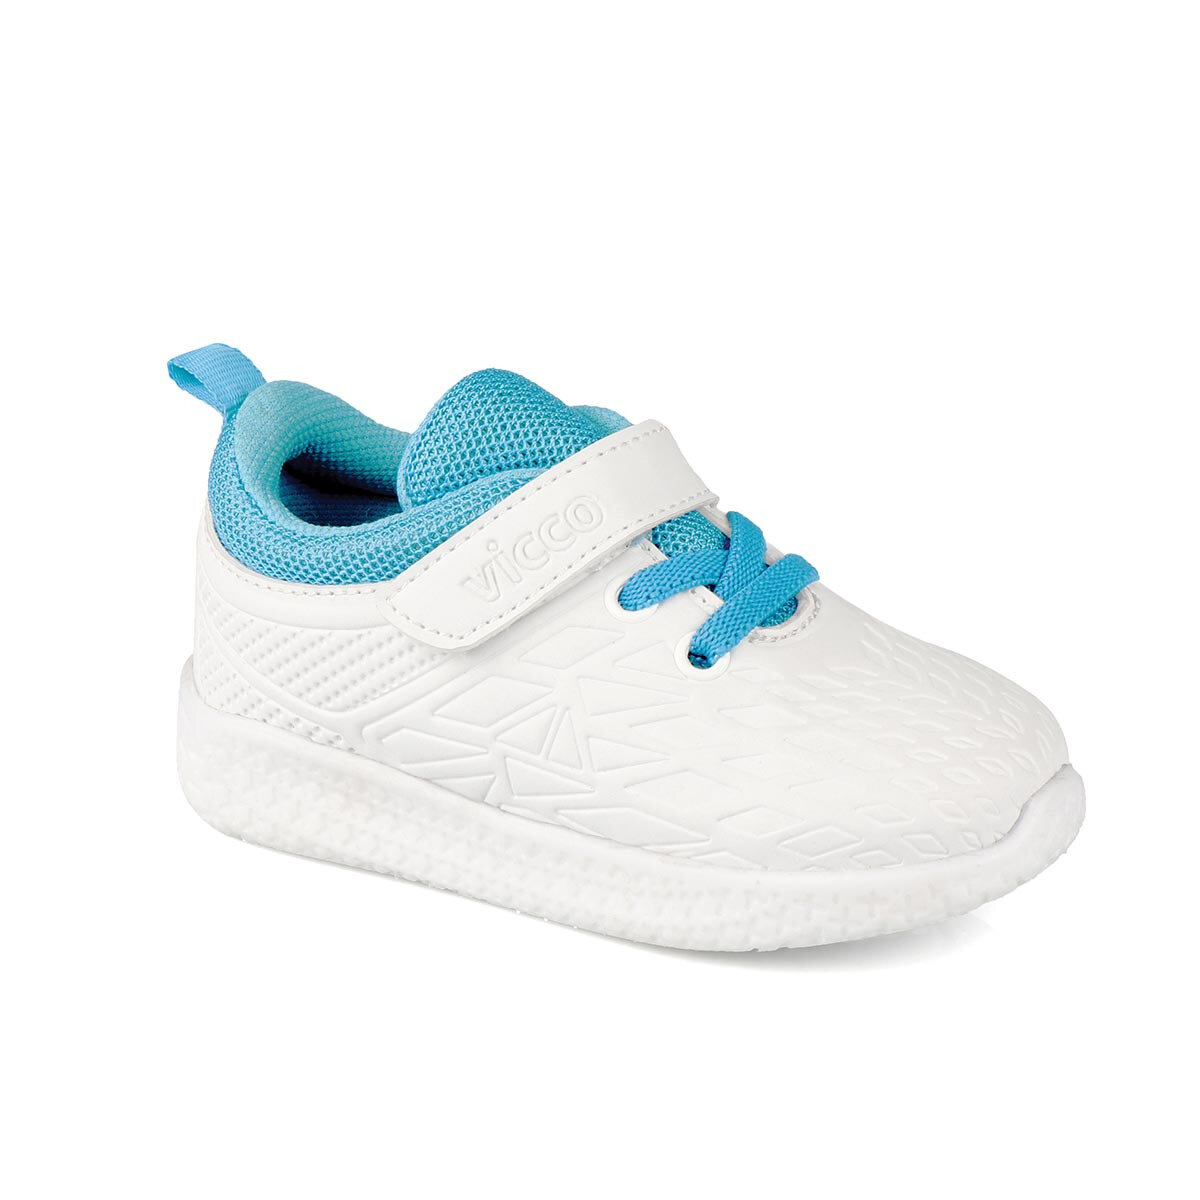 FLO 346.19Y.220 BEBE ILLUMINATED White Male Child Sneaker Shoes VICCO